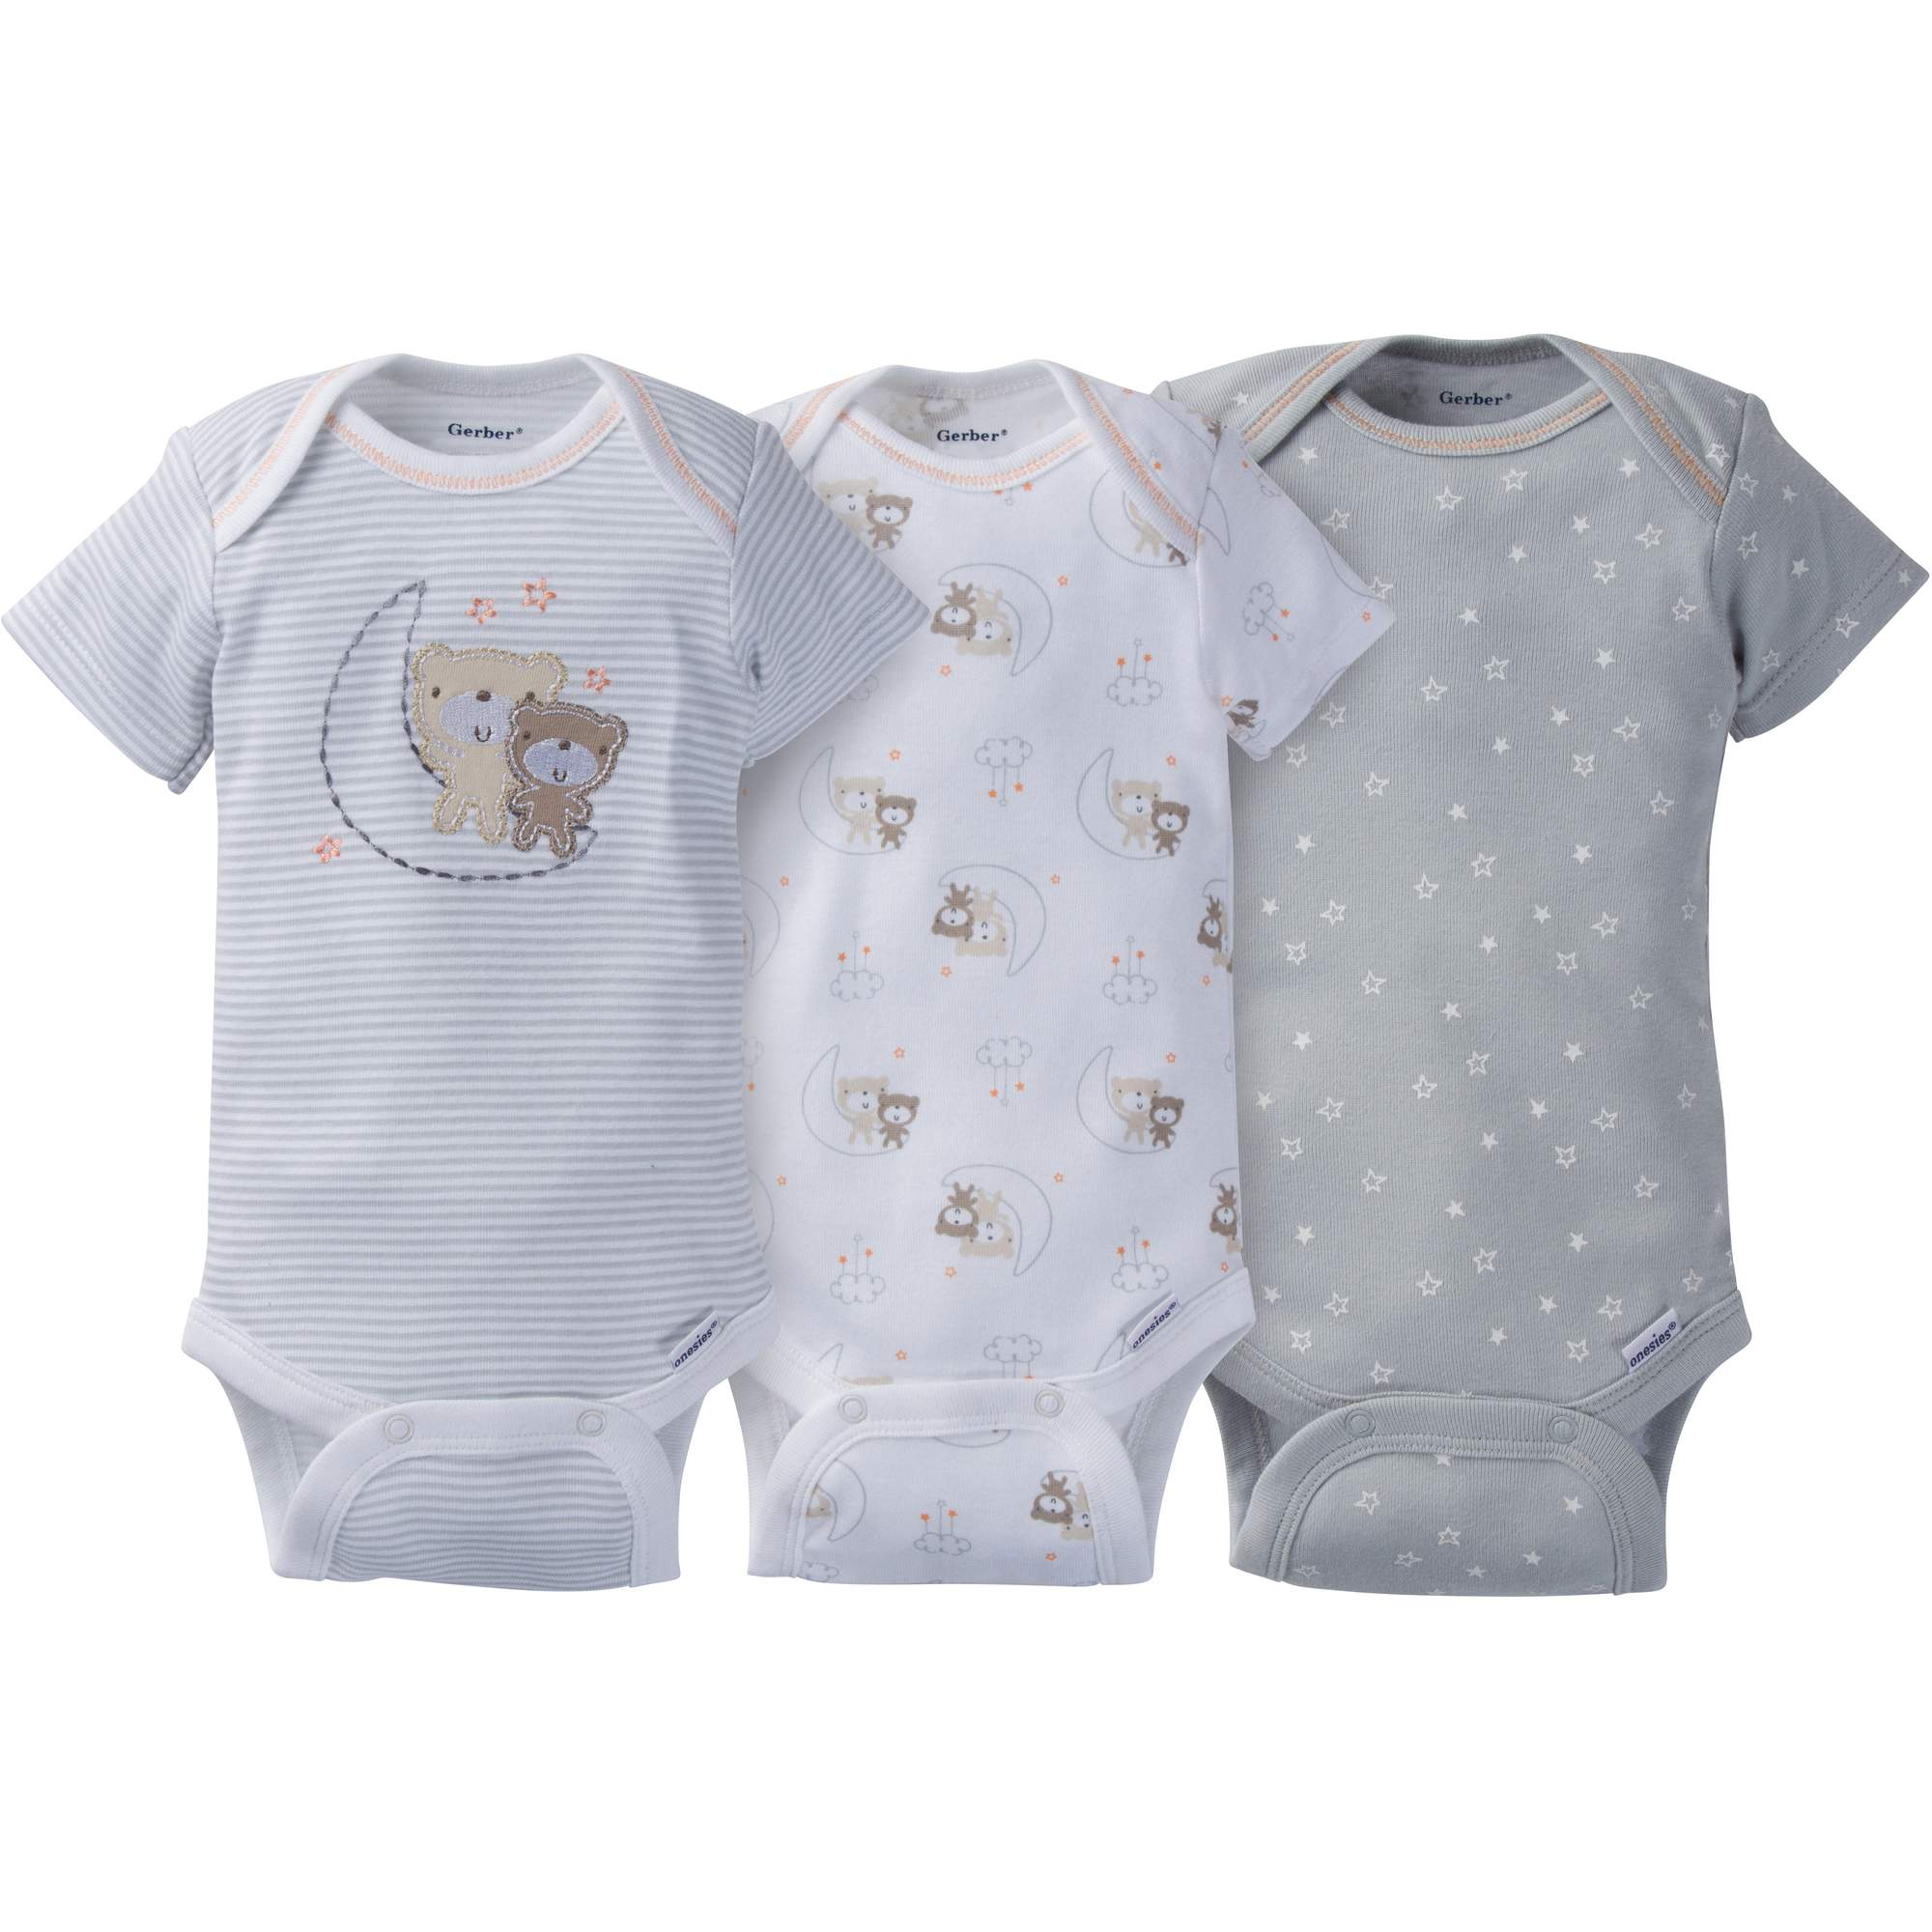 Image of Gerber Newborn Baby Boy or Girl Unisex Assorted Short Sleeve Onesies Bodysuits, 3-Pack